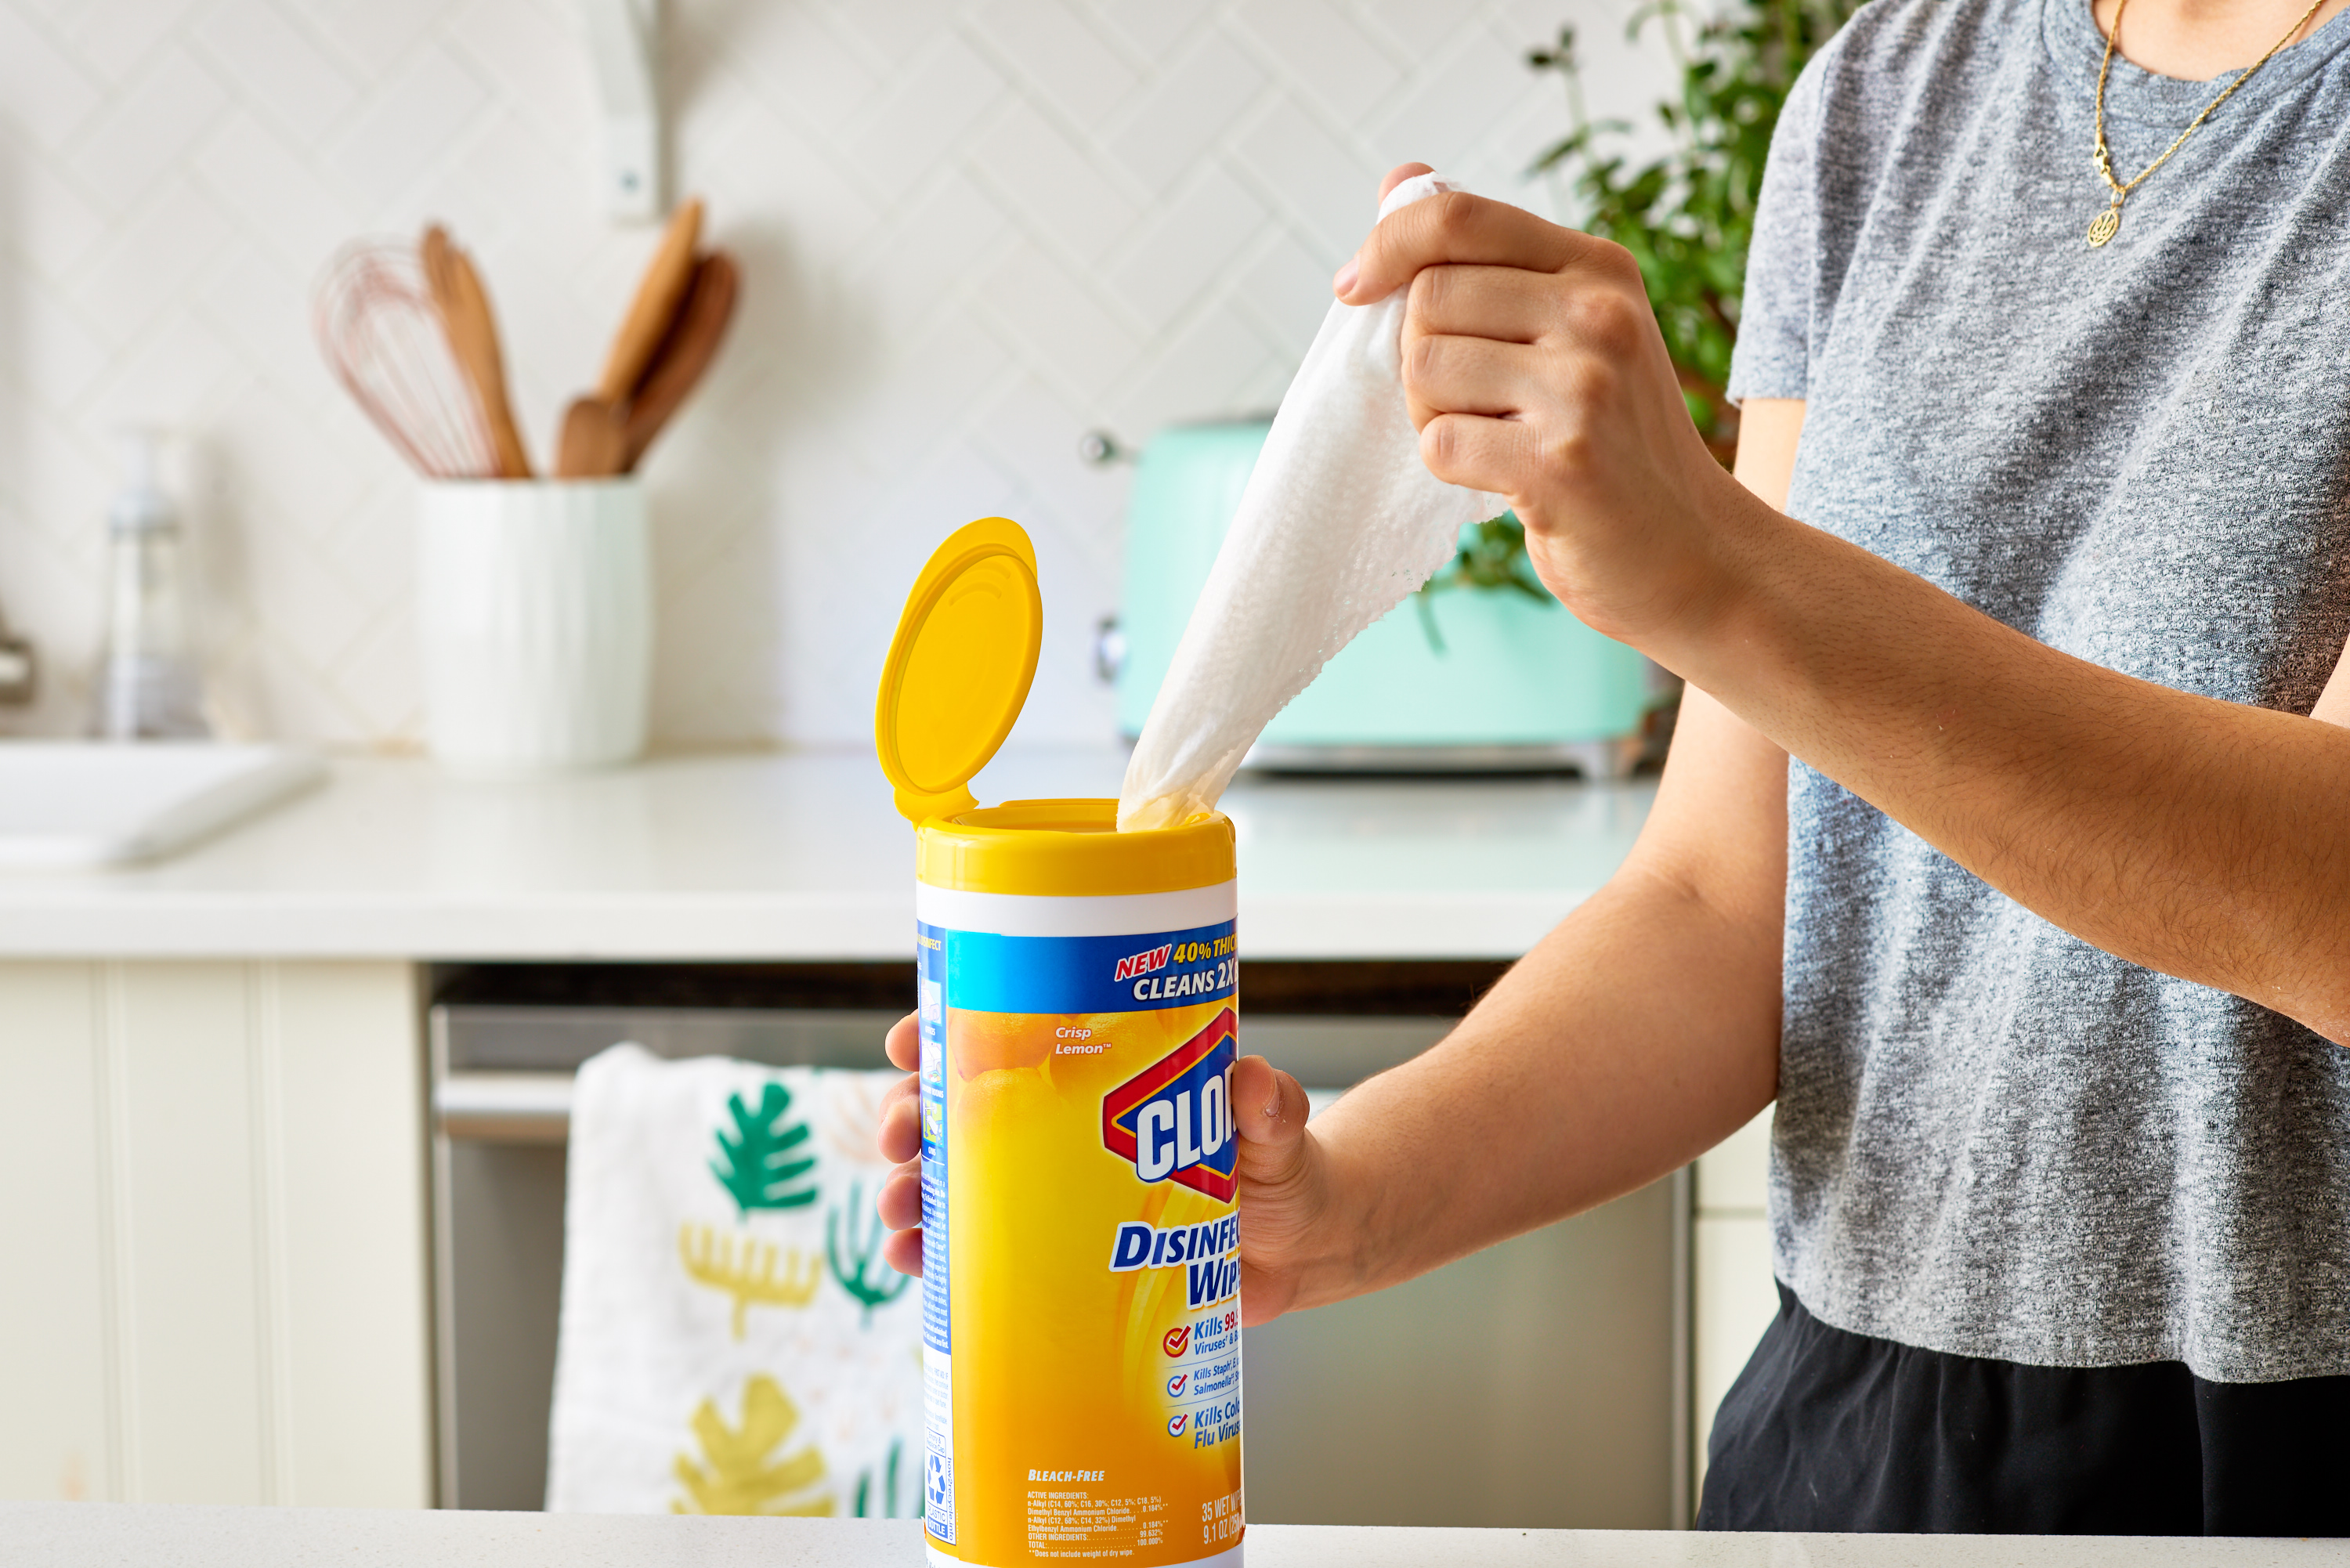 Clorox Wipes Cleaning and Disinfectant Tips | Apartment Therapy